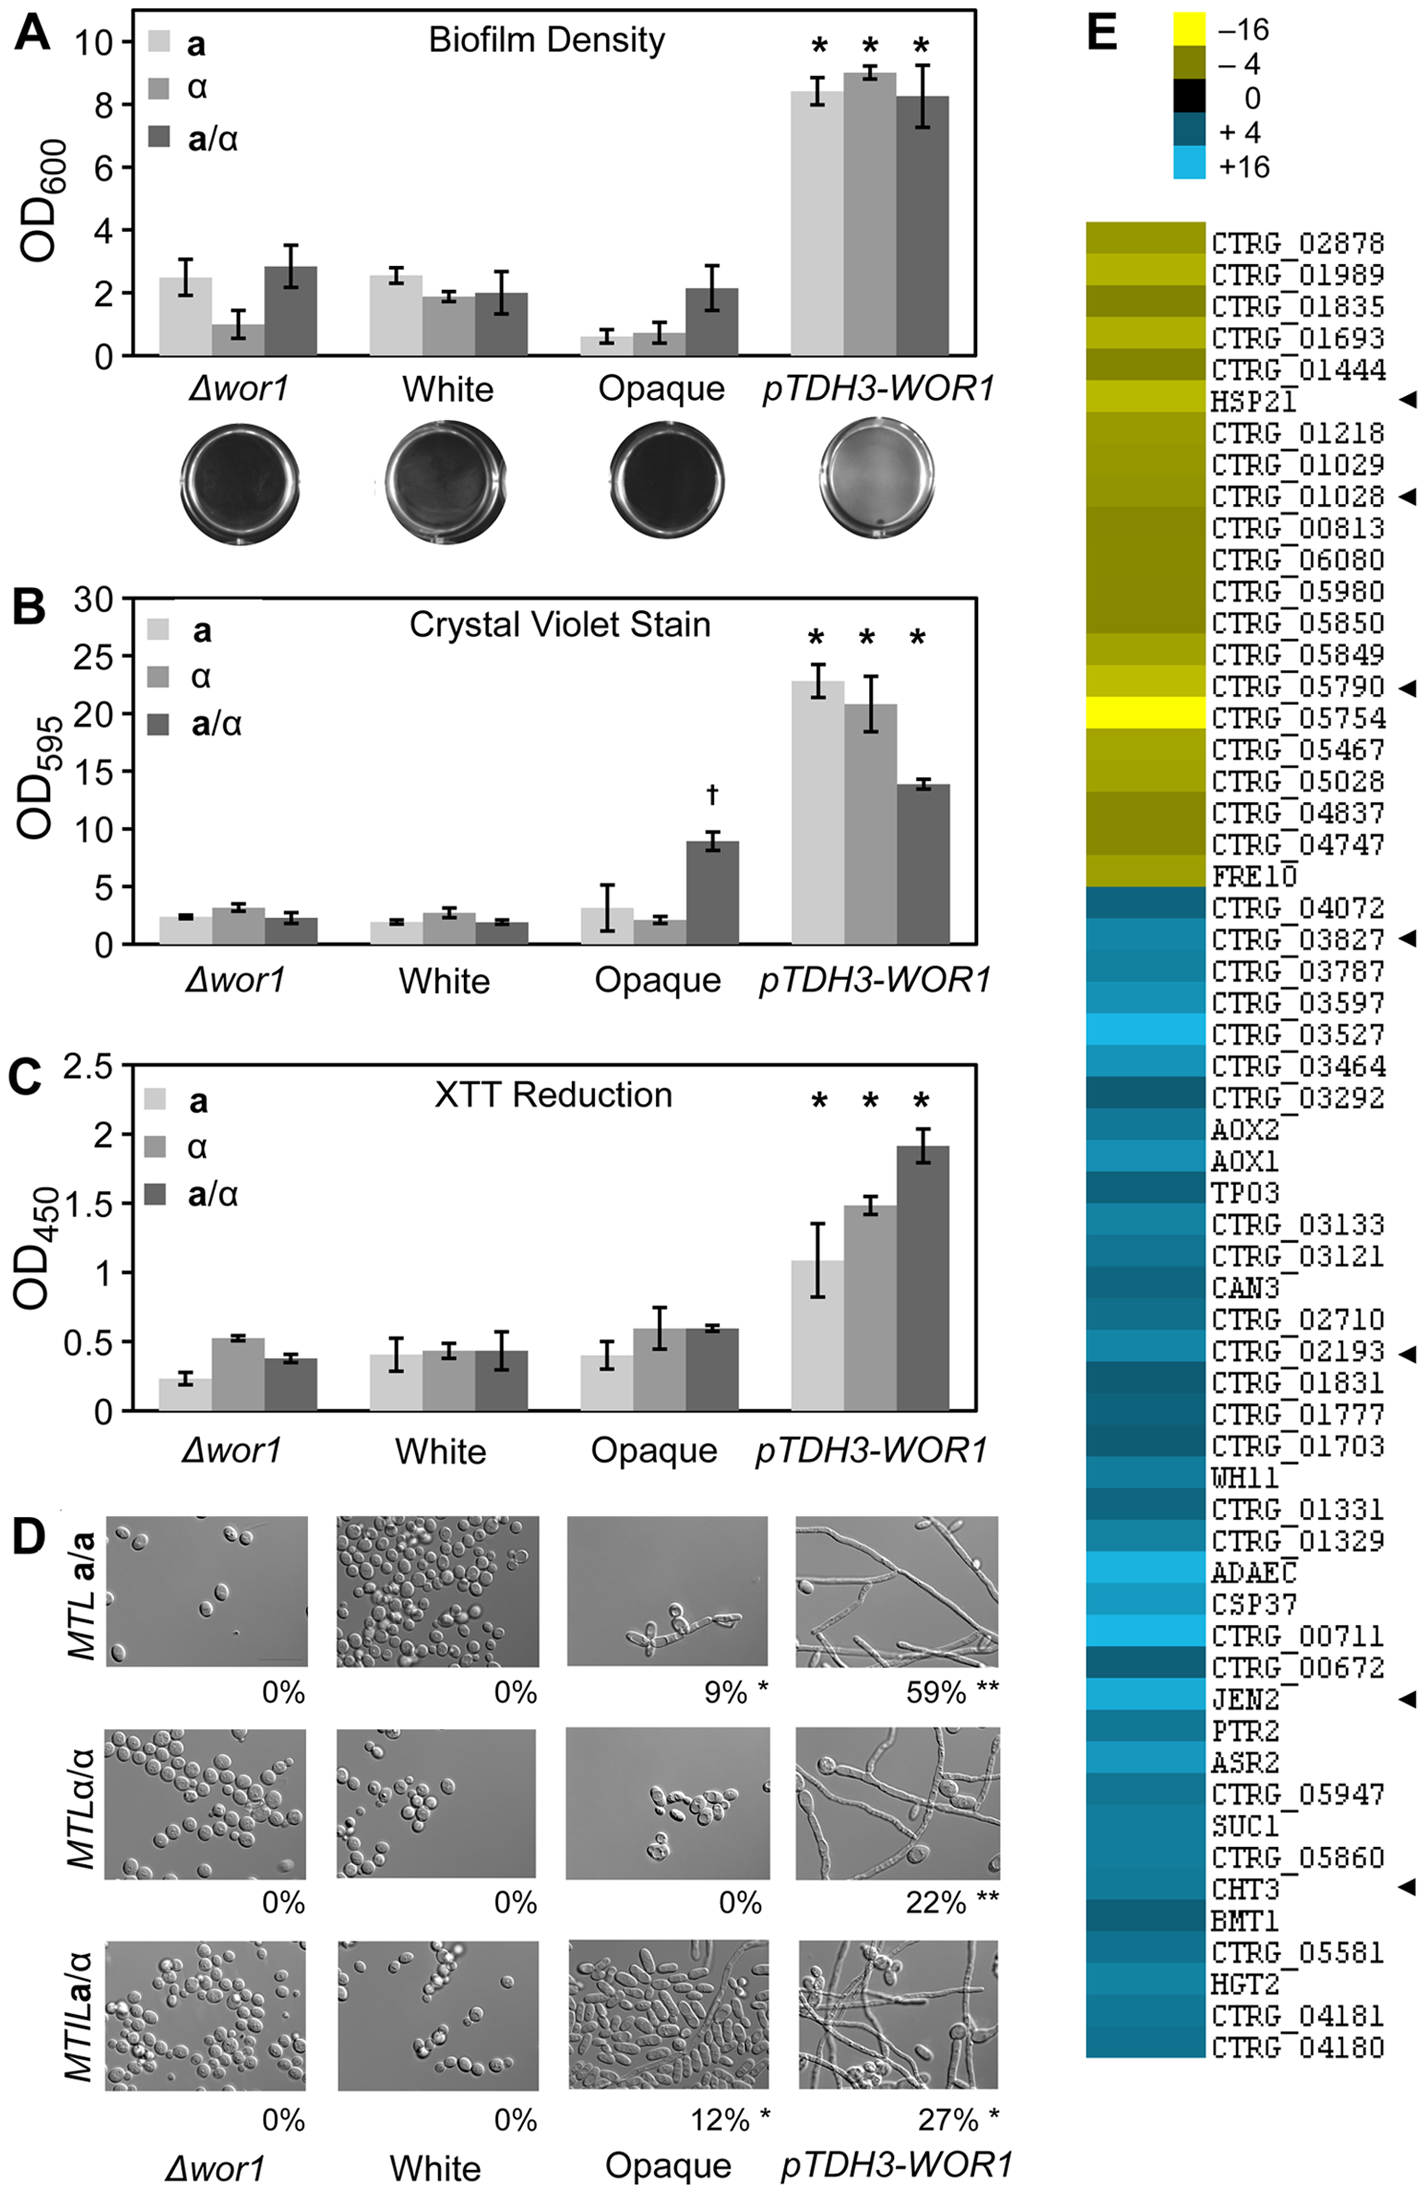 Biofilm formation is induced by <i>WOR1</i> overexpression in <i>C. tropicalis</i>.